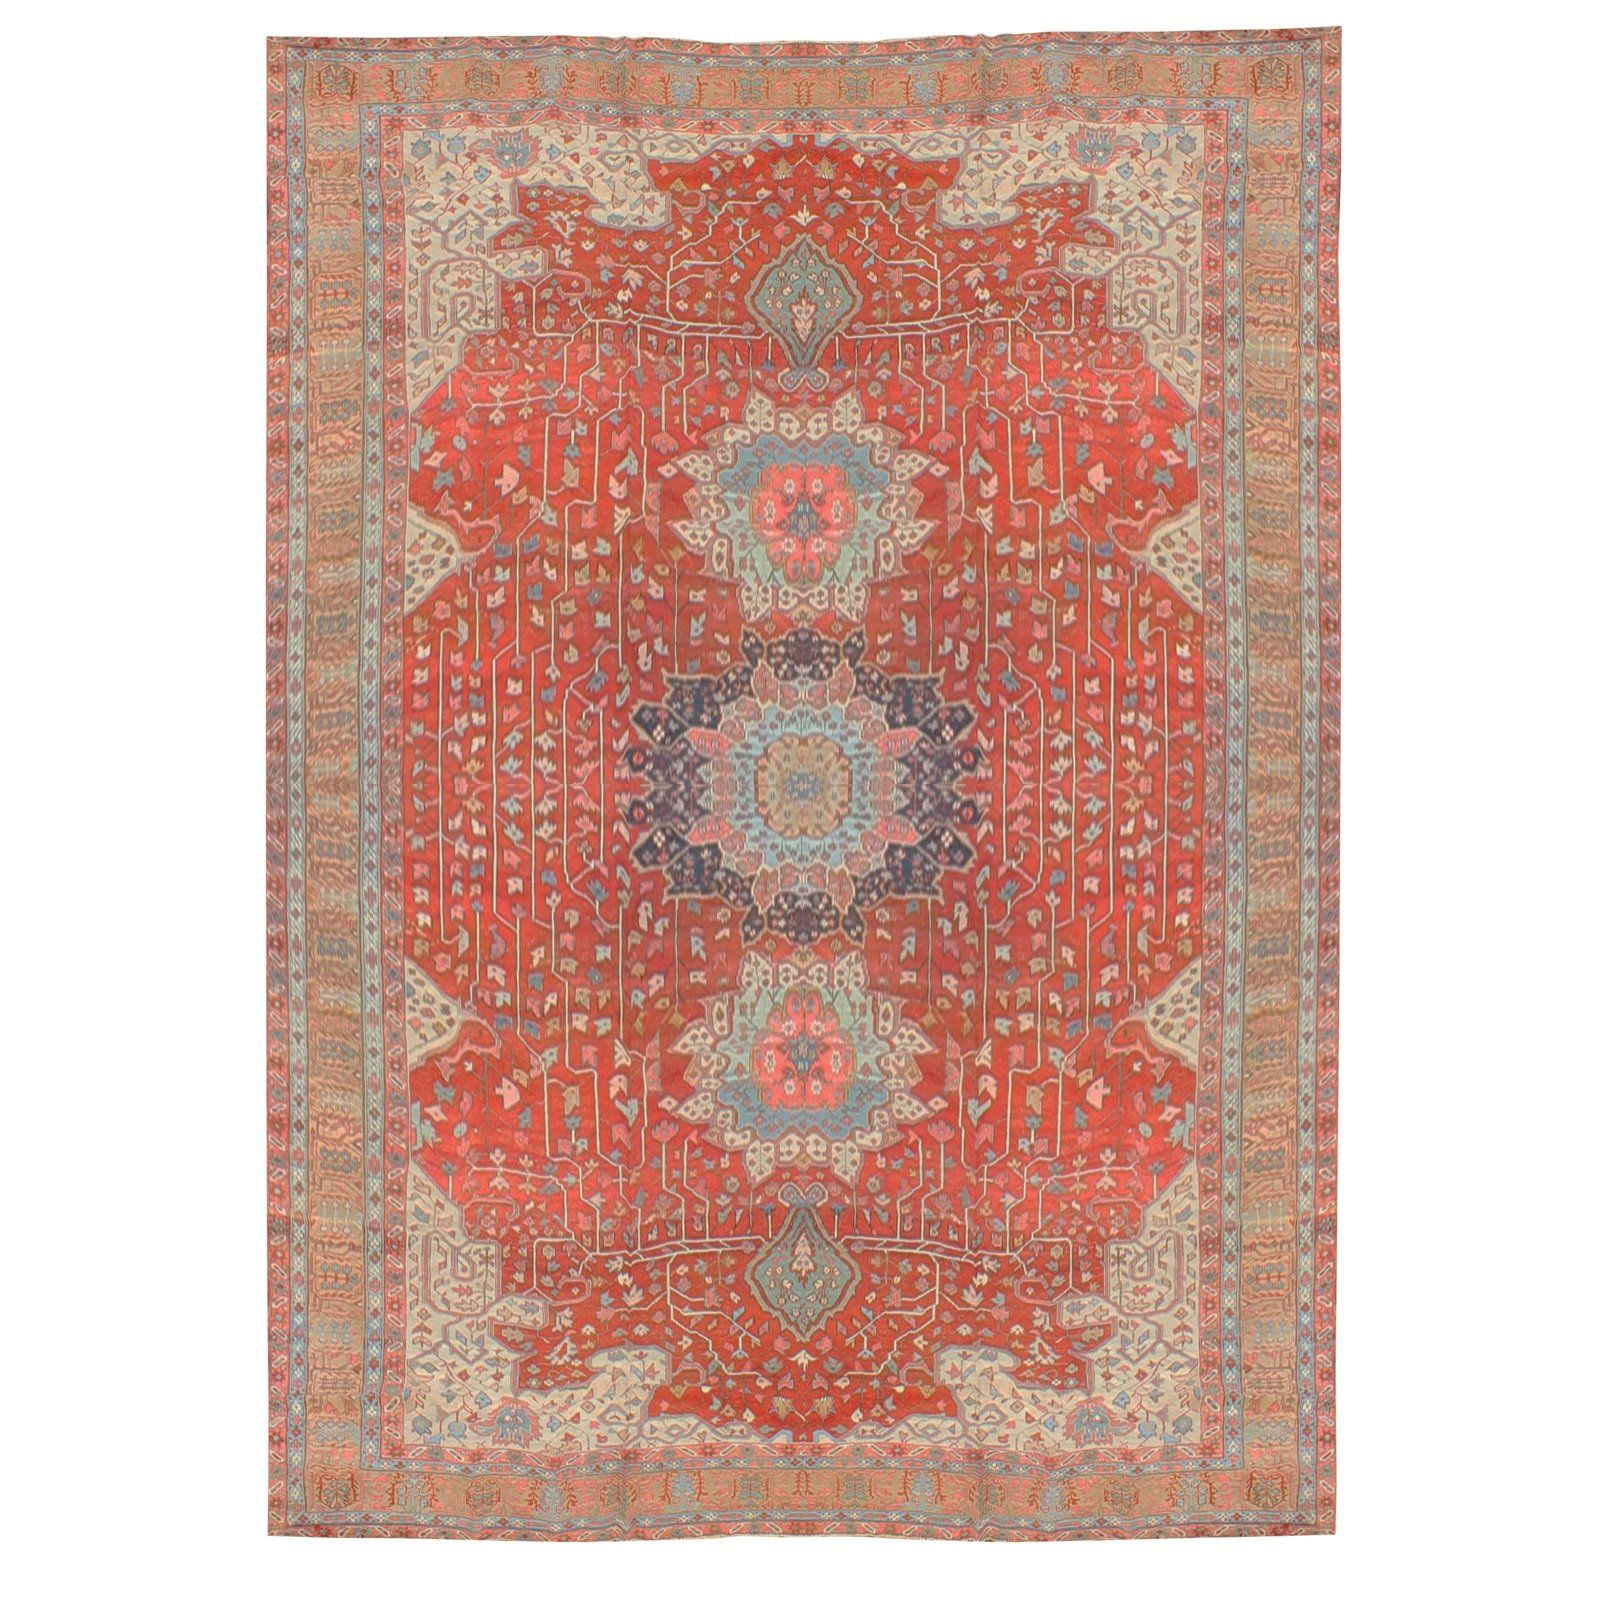 Antique 1880s Handknotted Serapi Rug Dimensions 16 22 Buying Carpet Plush Carpet Serapi Rug